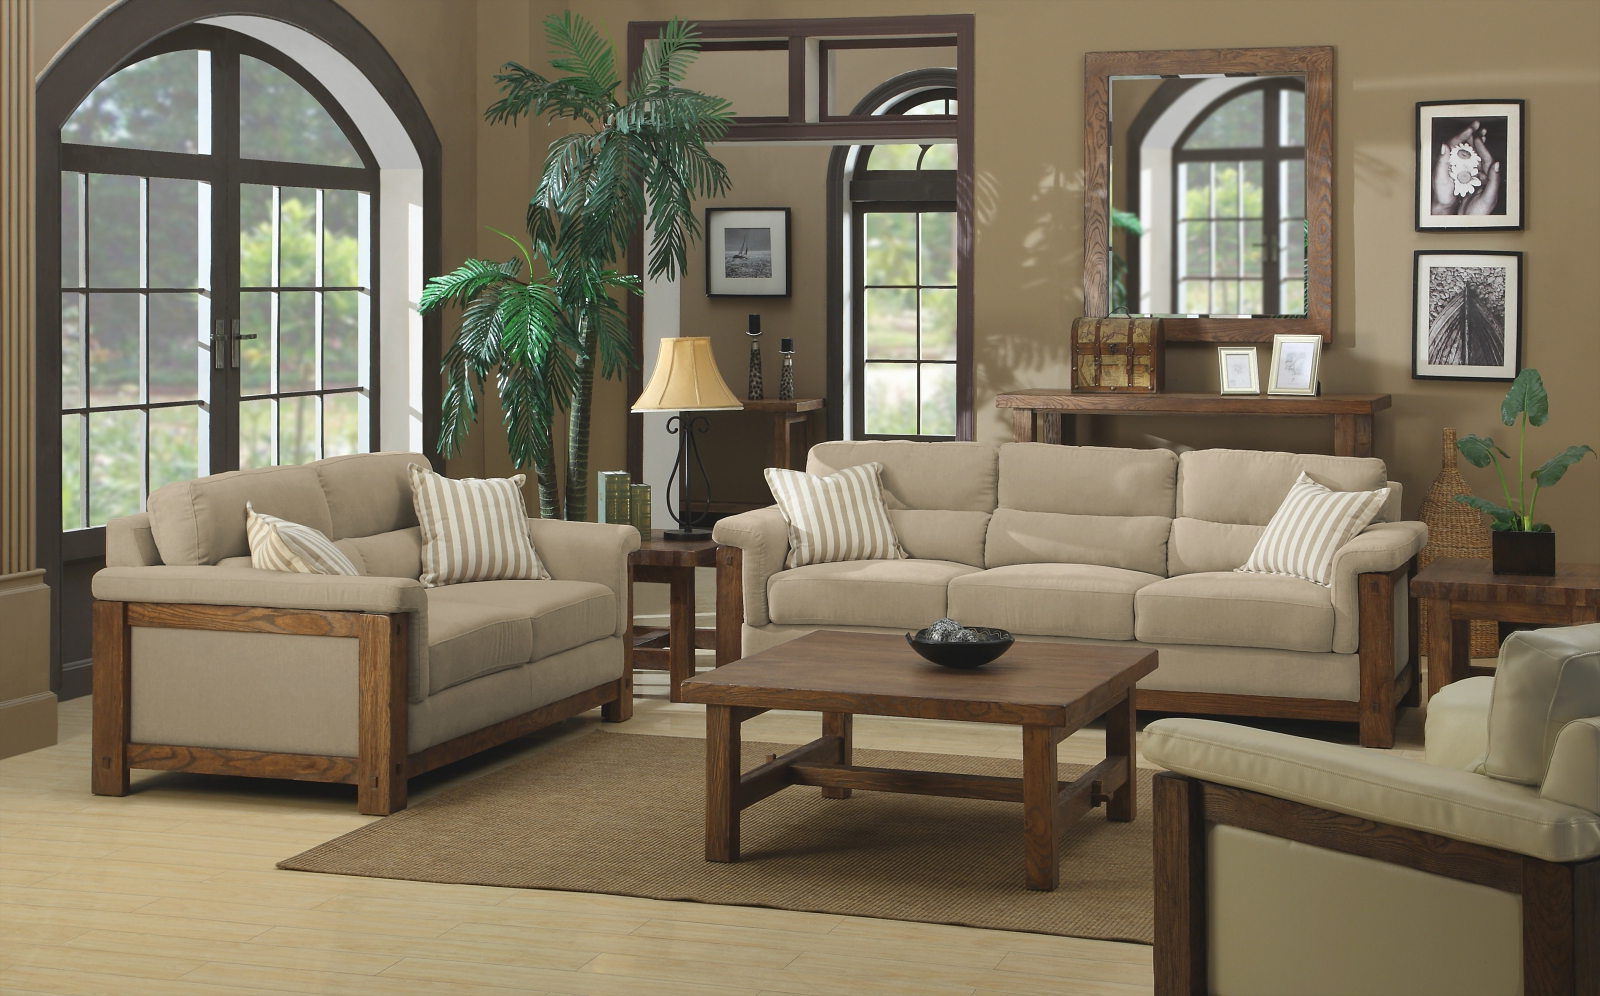 Living room in beige color for Pictures for living rooms what is in style